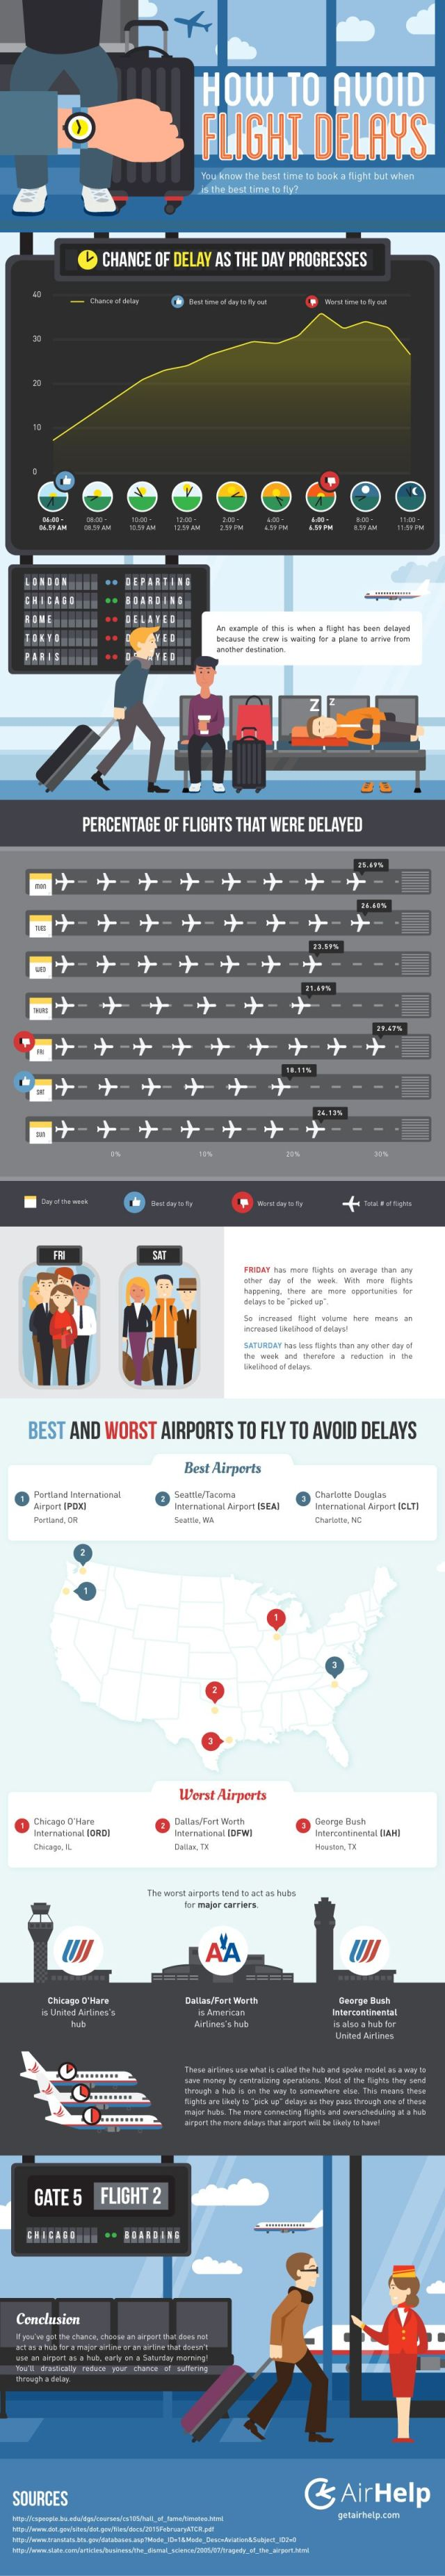 How to Avoid Flight Delays? #infographic